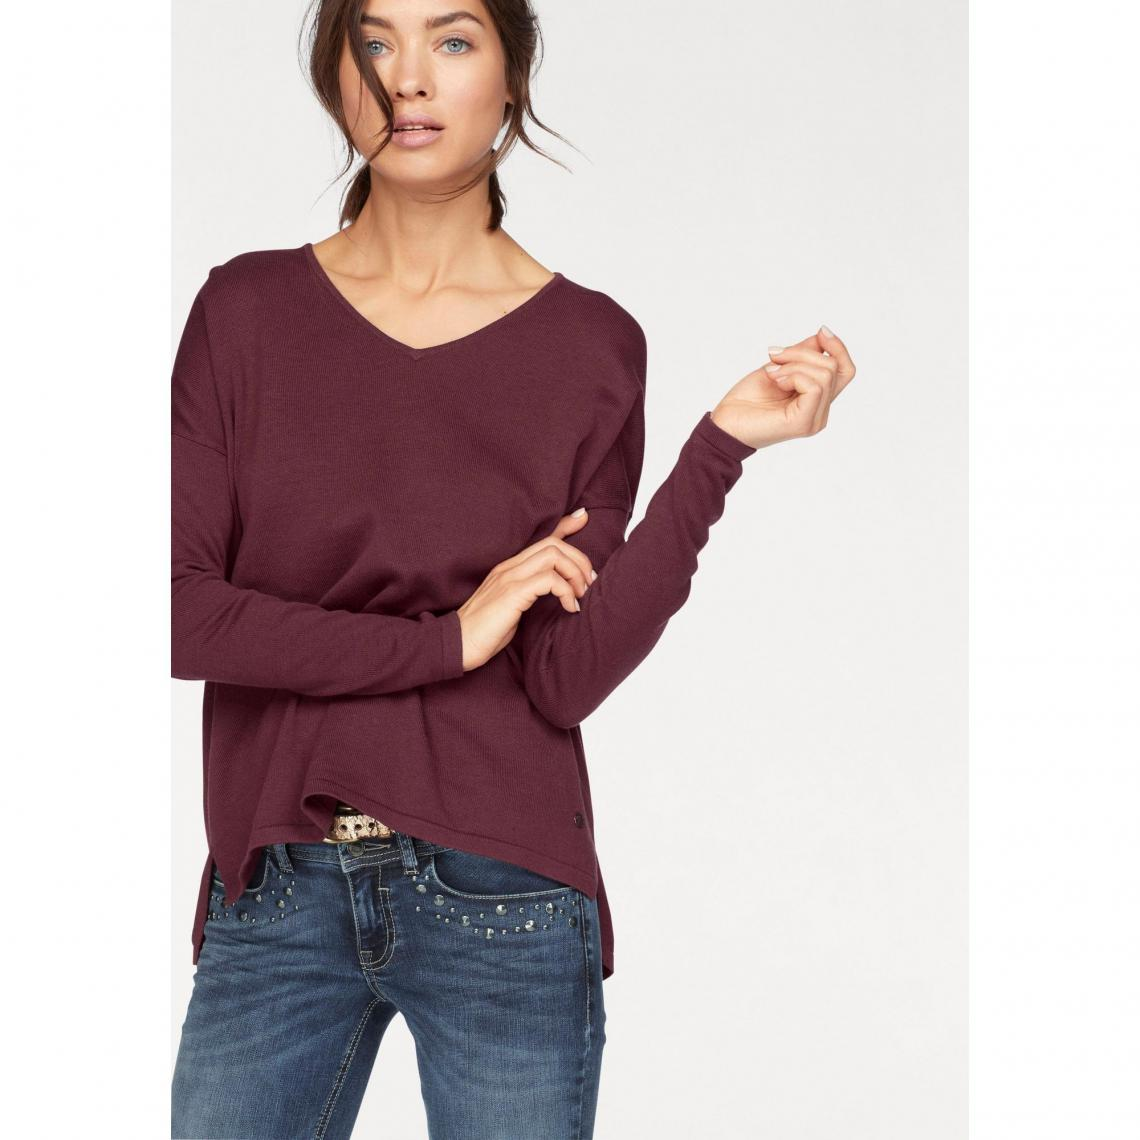 693167d3fd4b Pull col rond manches longues maille fine femme Tom Tailor - Rouge Tom  tailor Femme